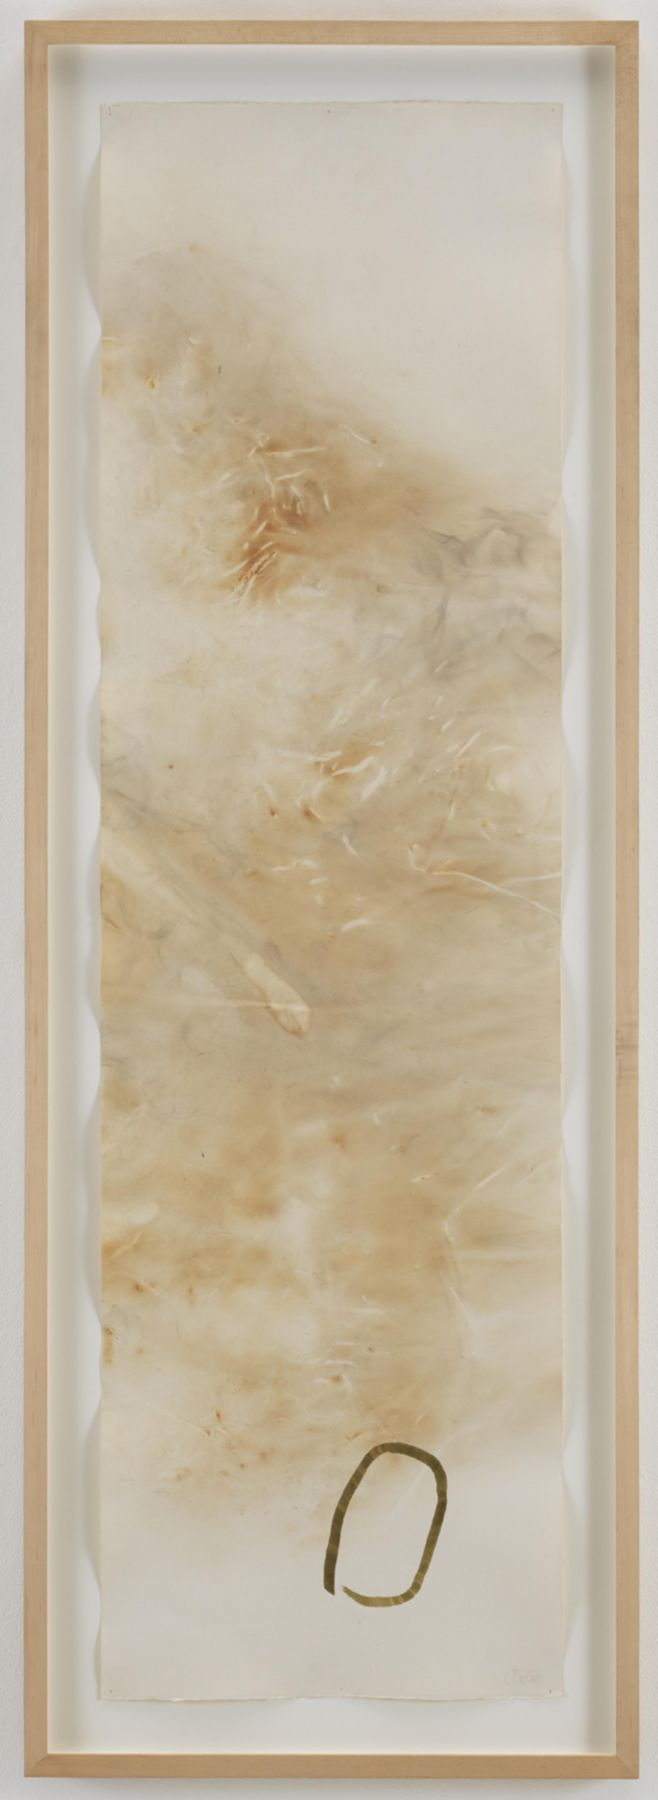 , JOHN CAGE River Rocks and Smoke, 4/13/90, #3, 1990 Watercolor on Arches cold press paper prepared with fire and smoke 52.5 x 15 inches (133.3 x 38.1 cm) Courtesy of Margarete Roeder Gallery and the John Cage Trust